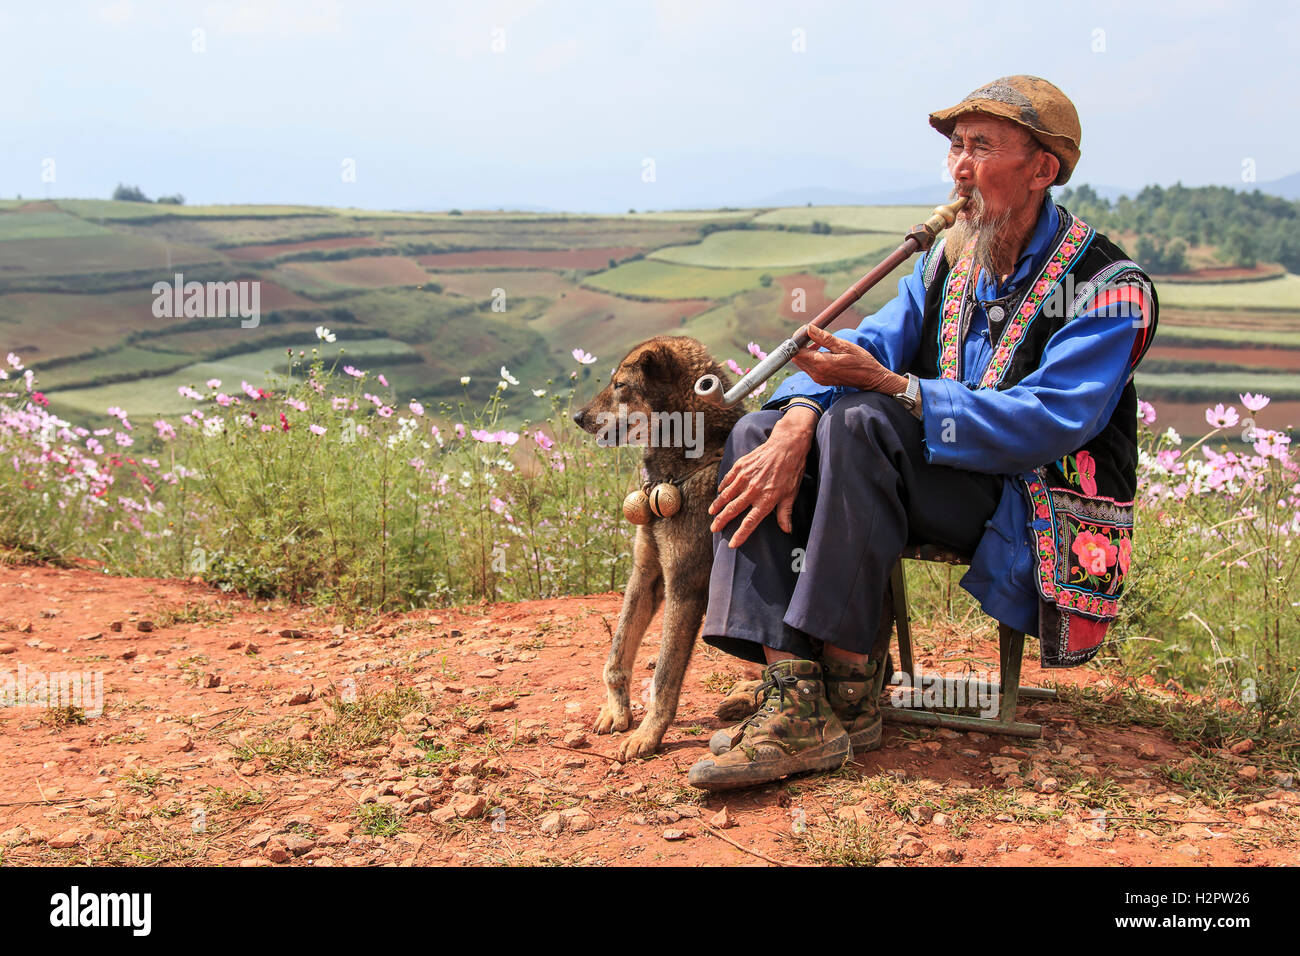 dongchuan-china-september-27-2016-an-old